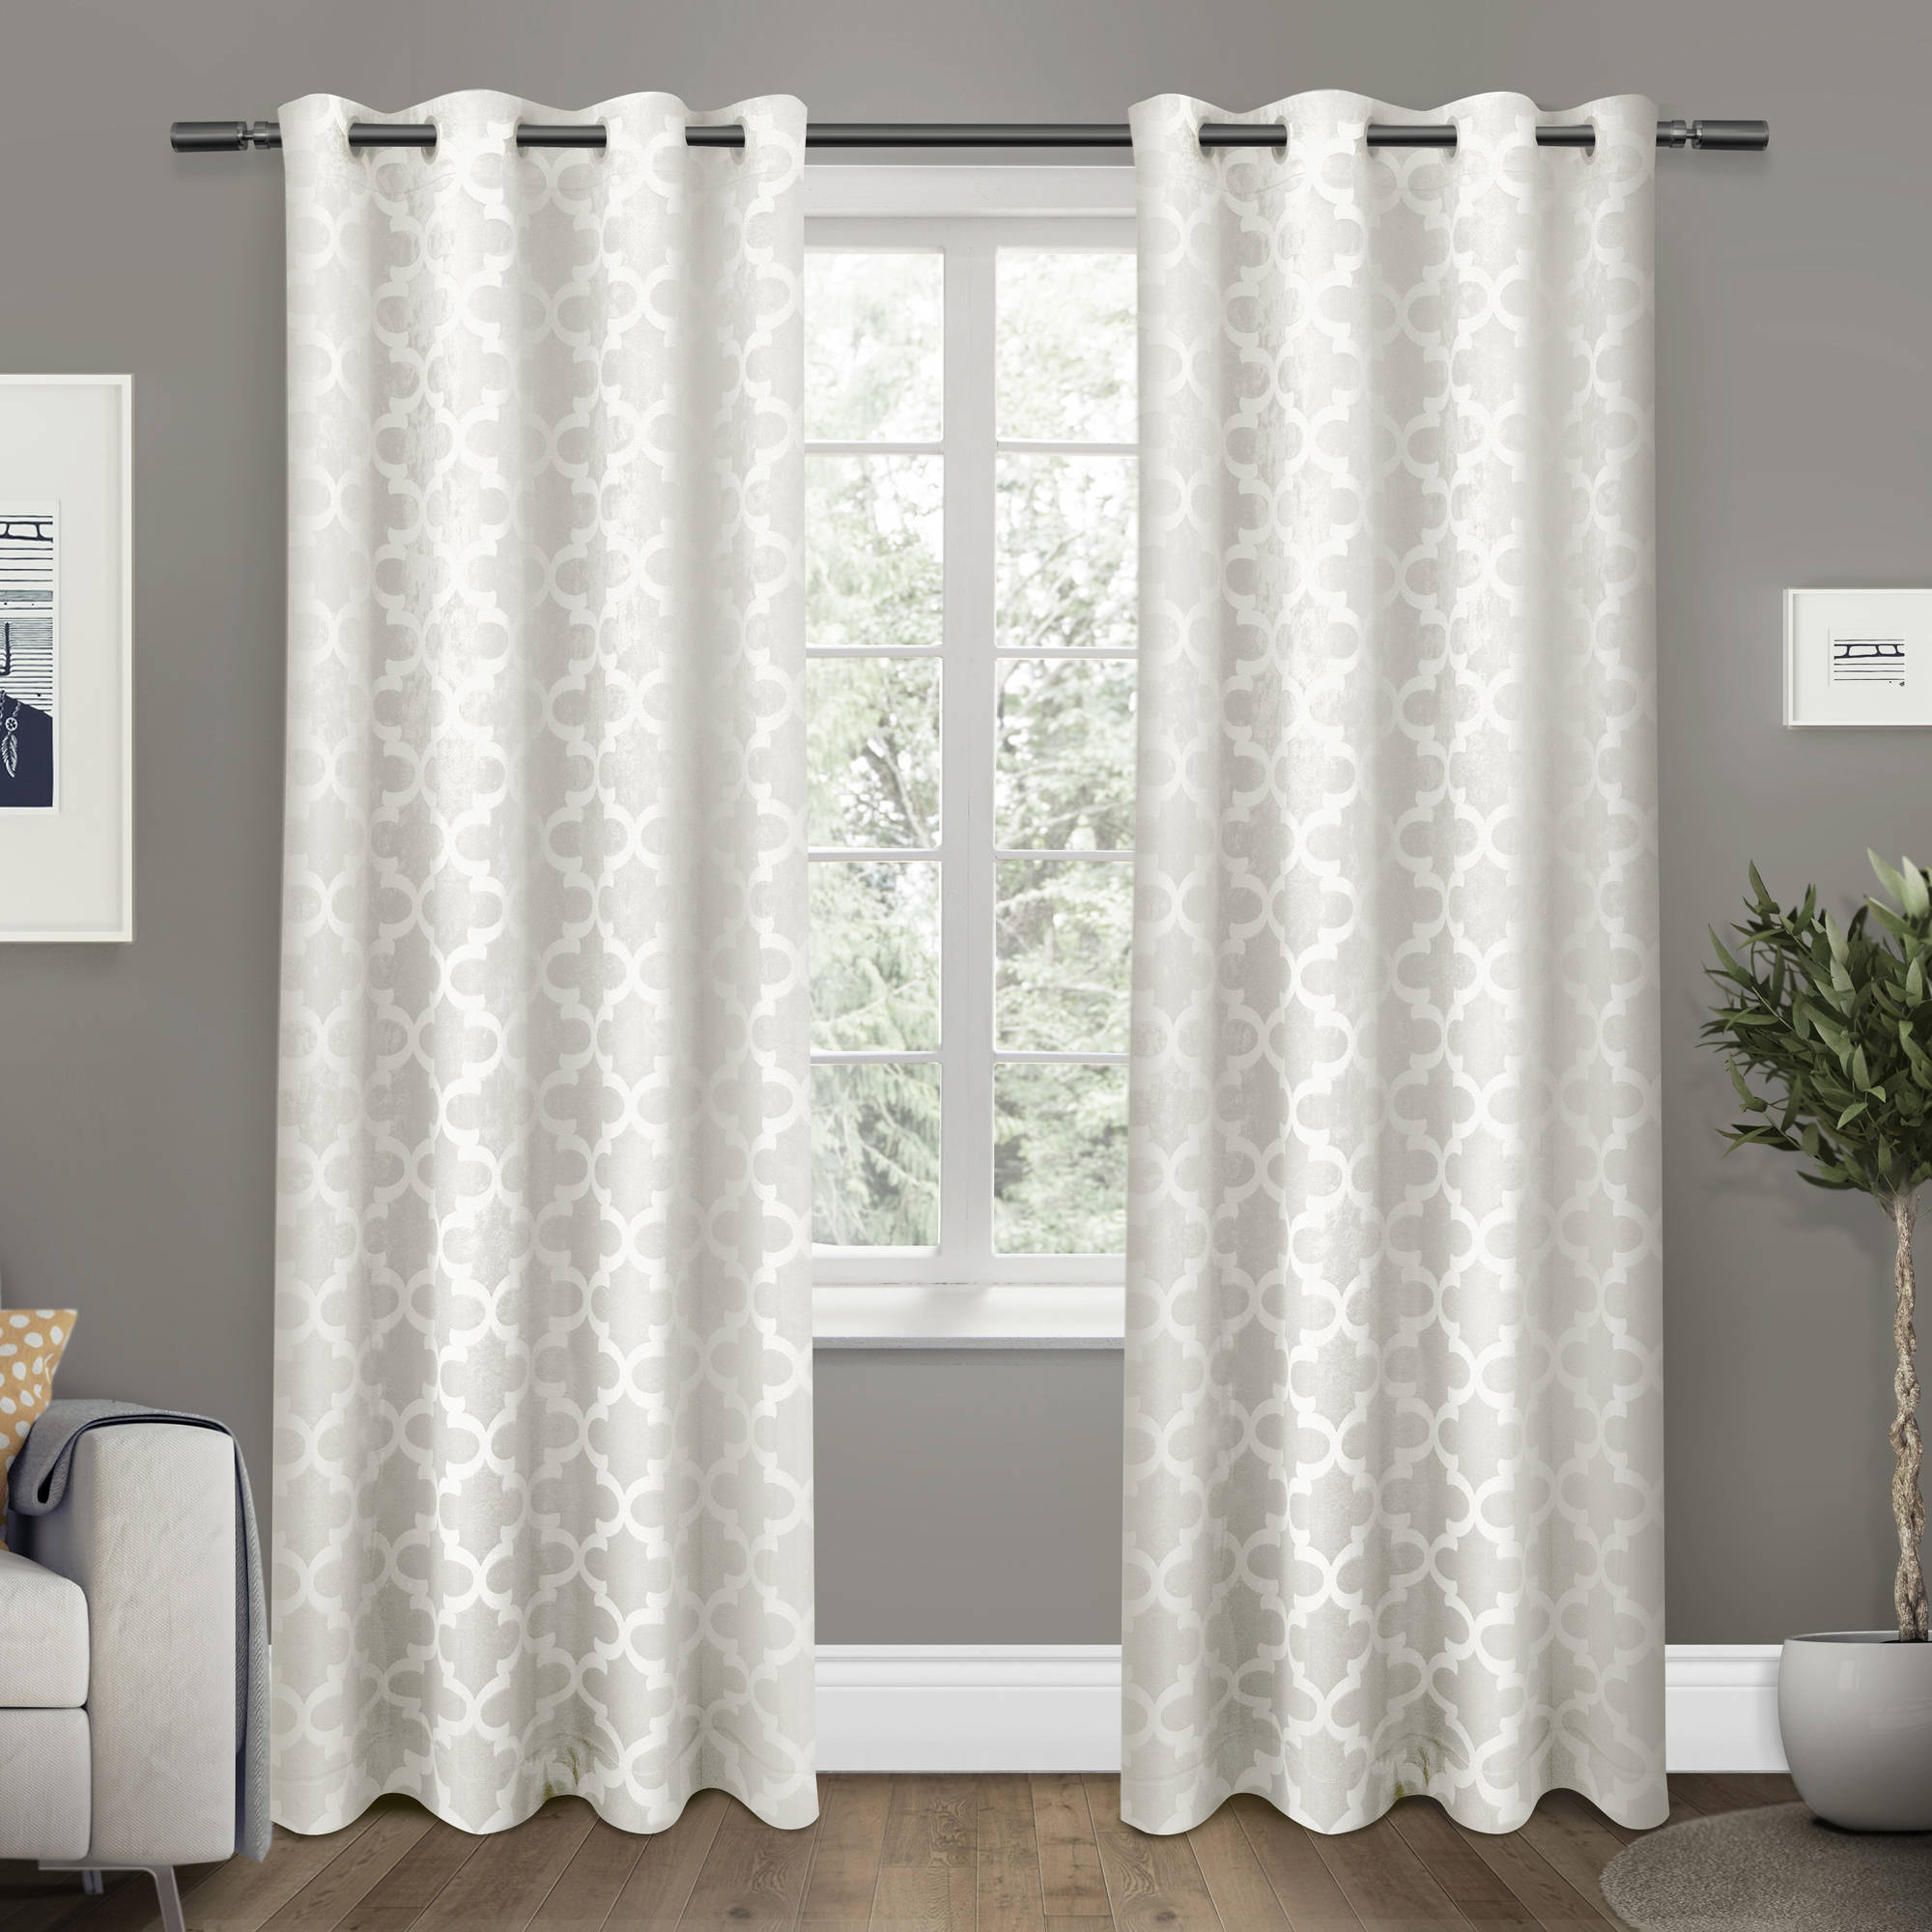 Exclusive Home Cartago Insulated Woven Blackout Grommet Top Window Curtain Panel Pair,... by Exclusive Home